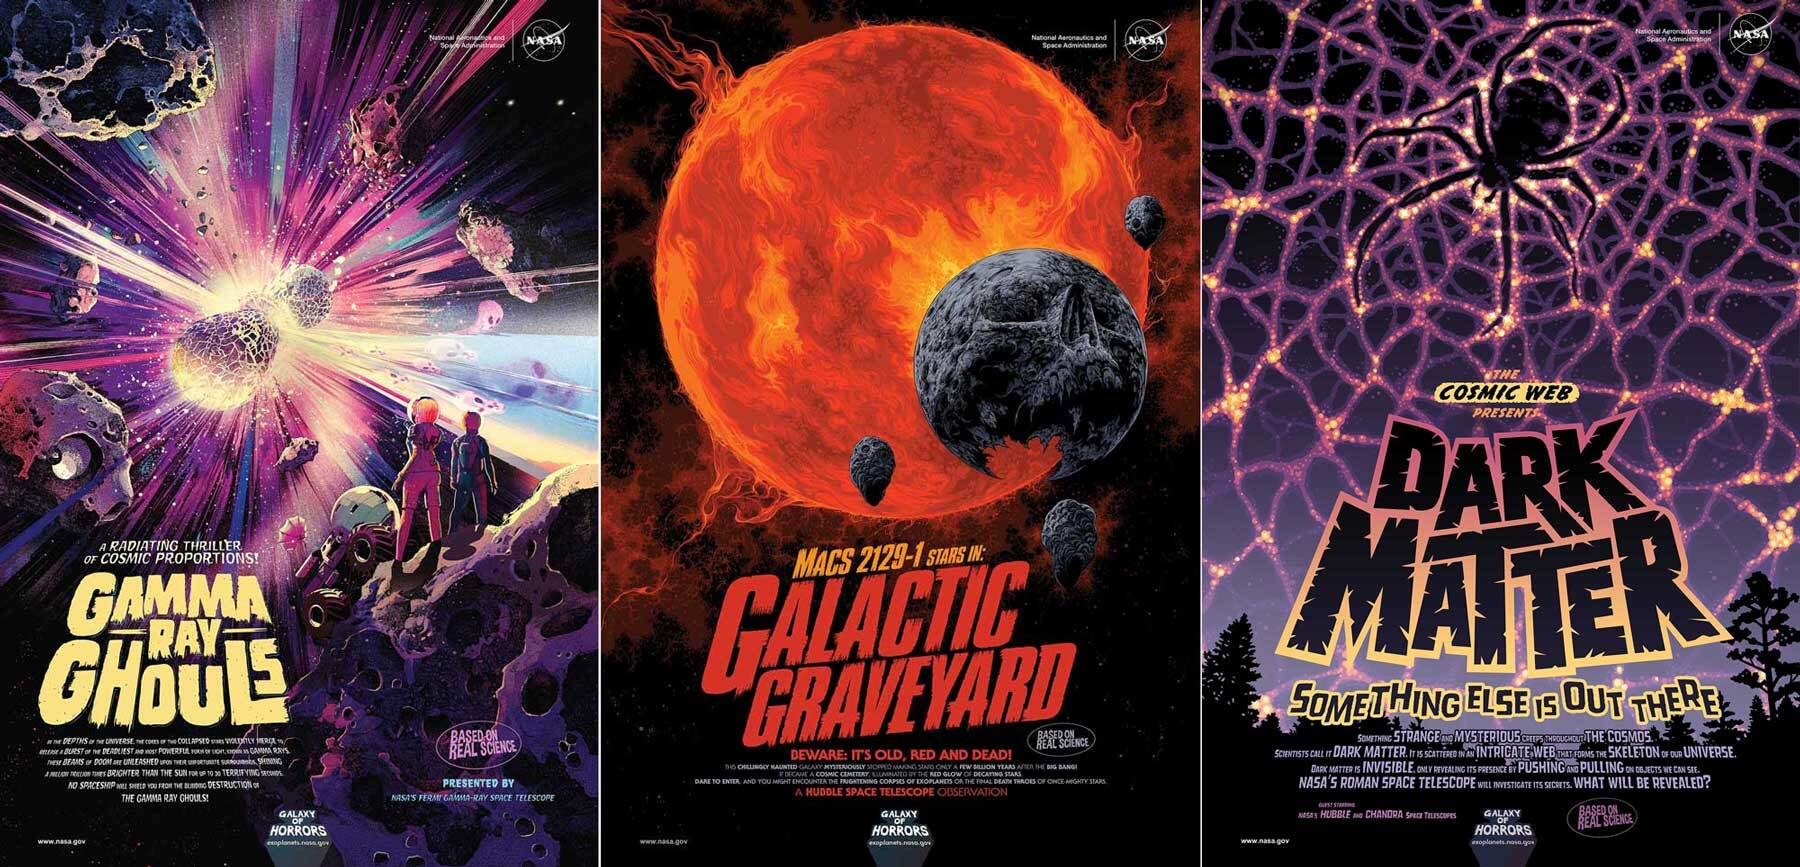 Three new posters based on sci-fi and horror movie ads of the past.